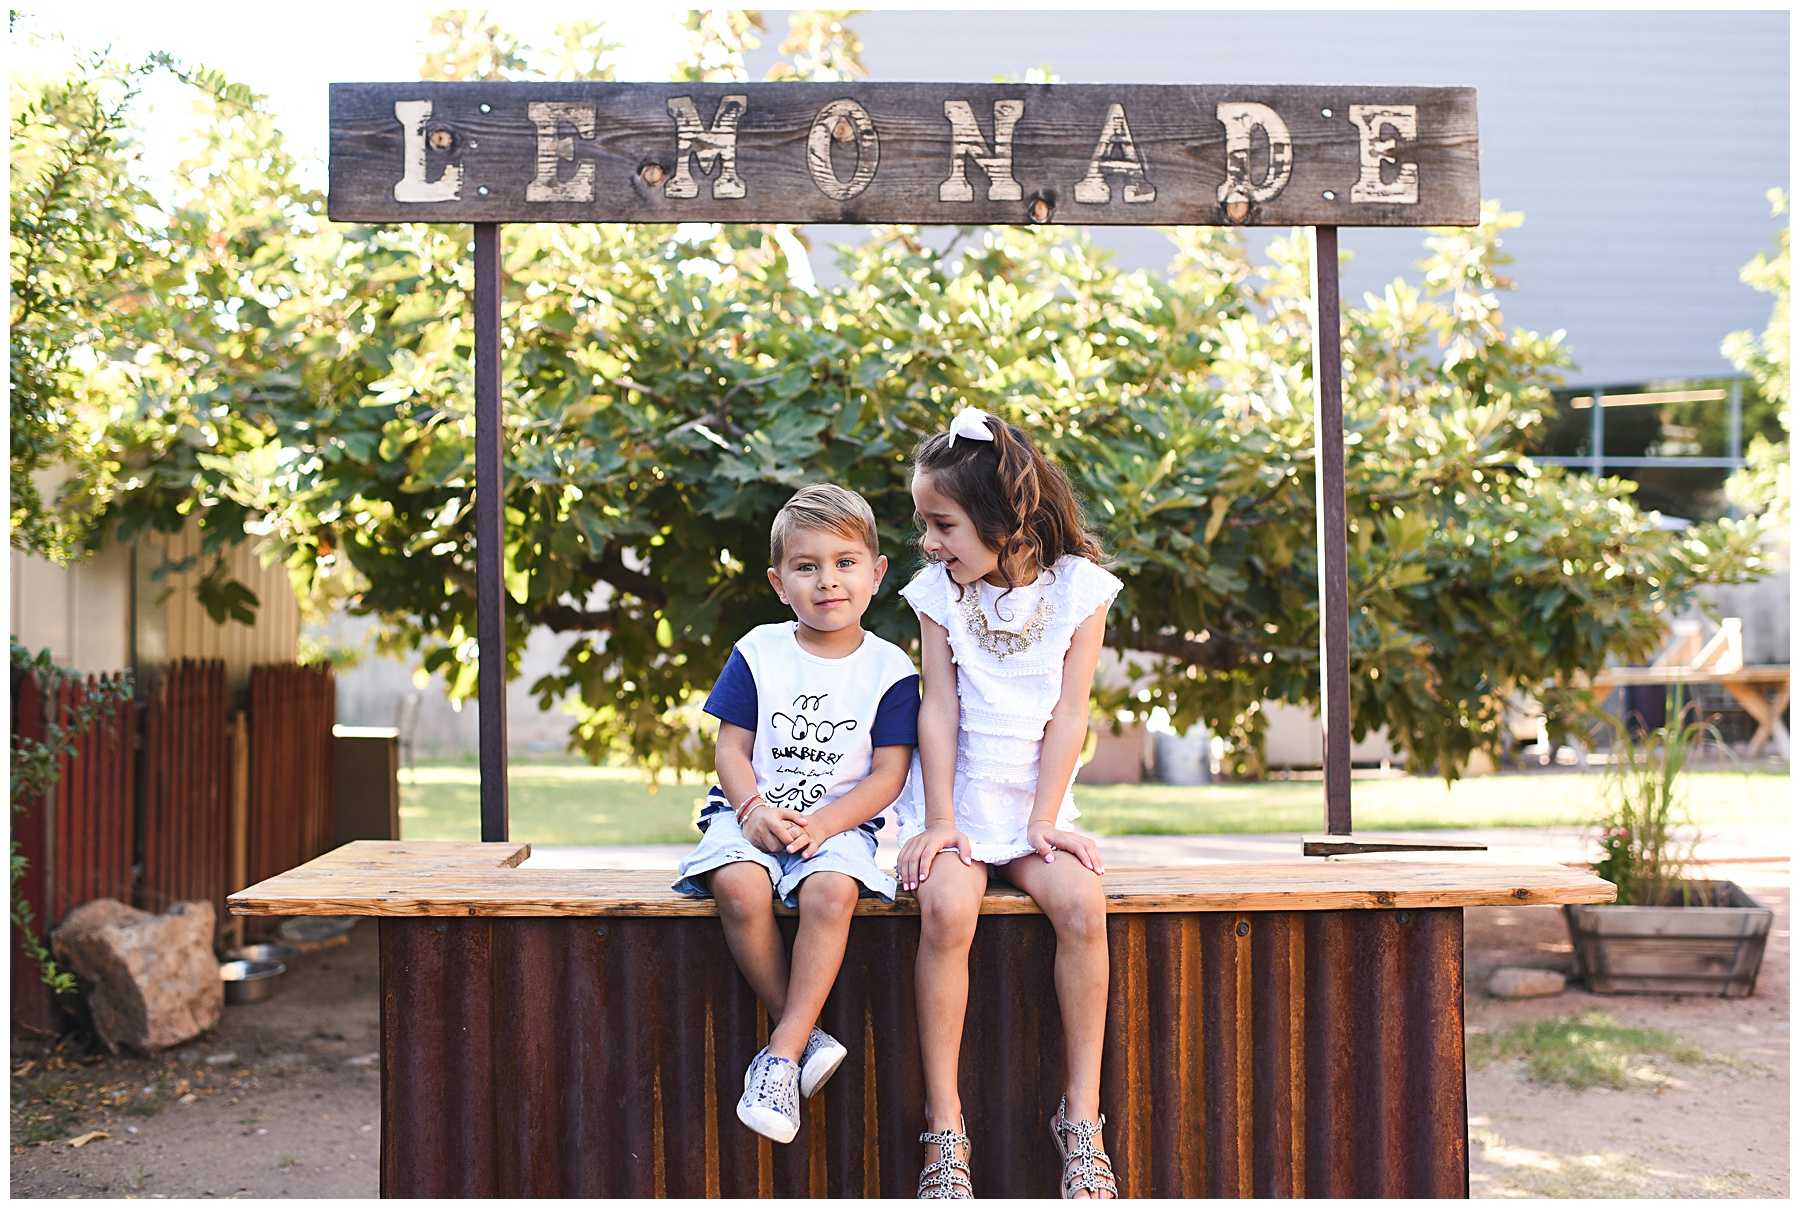 Lemonade Stand Child photographer | Sweetlife Photography